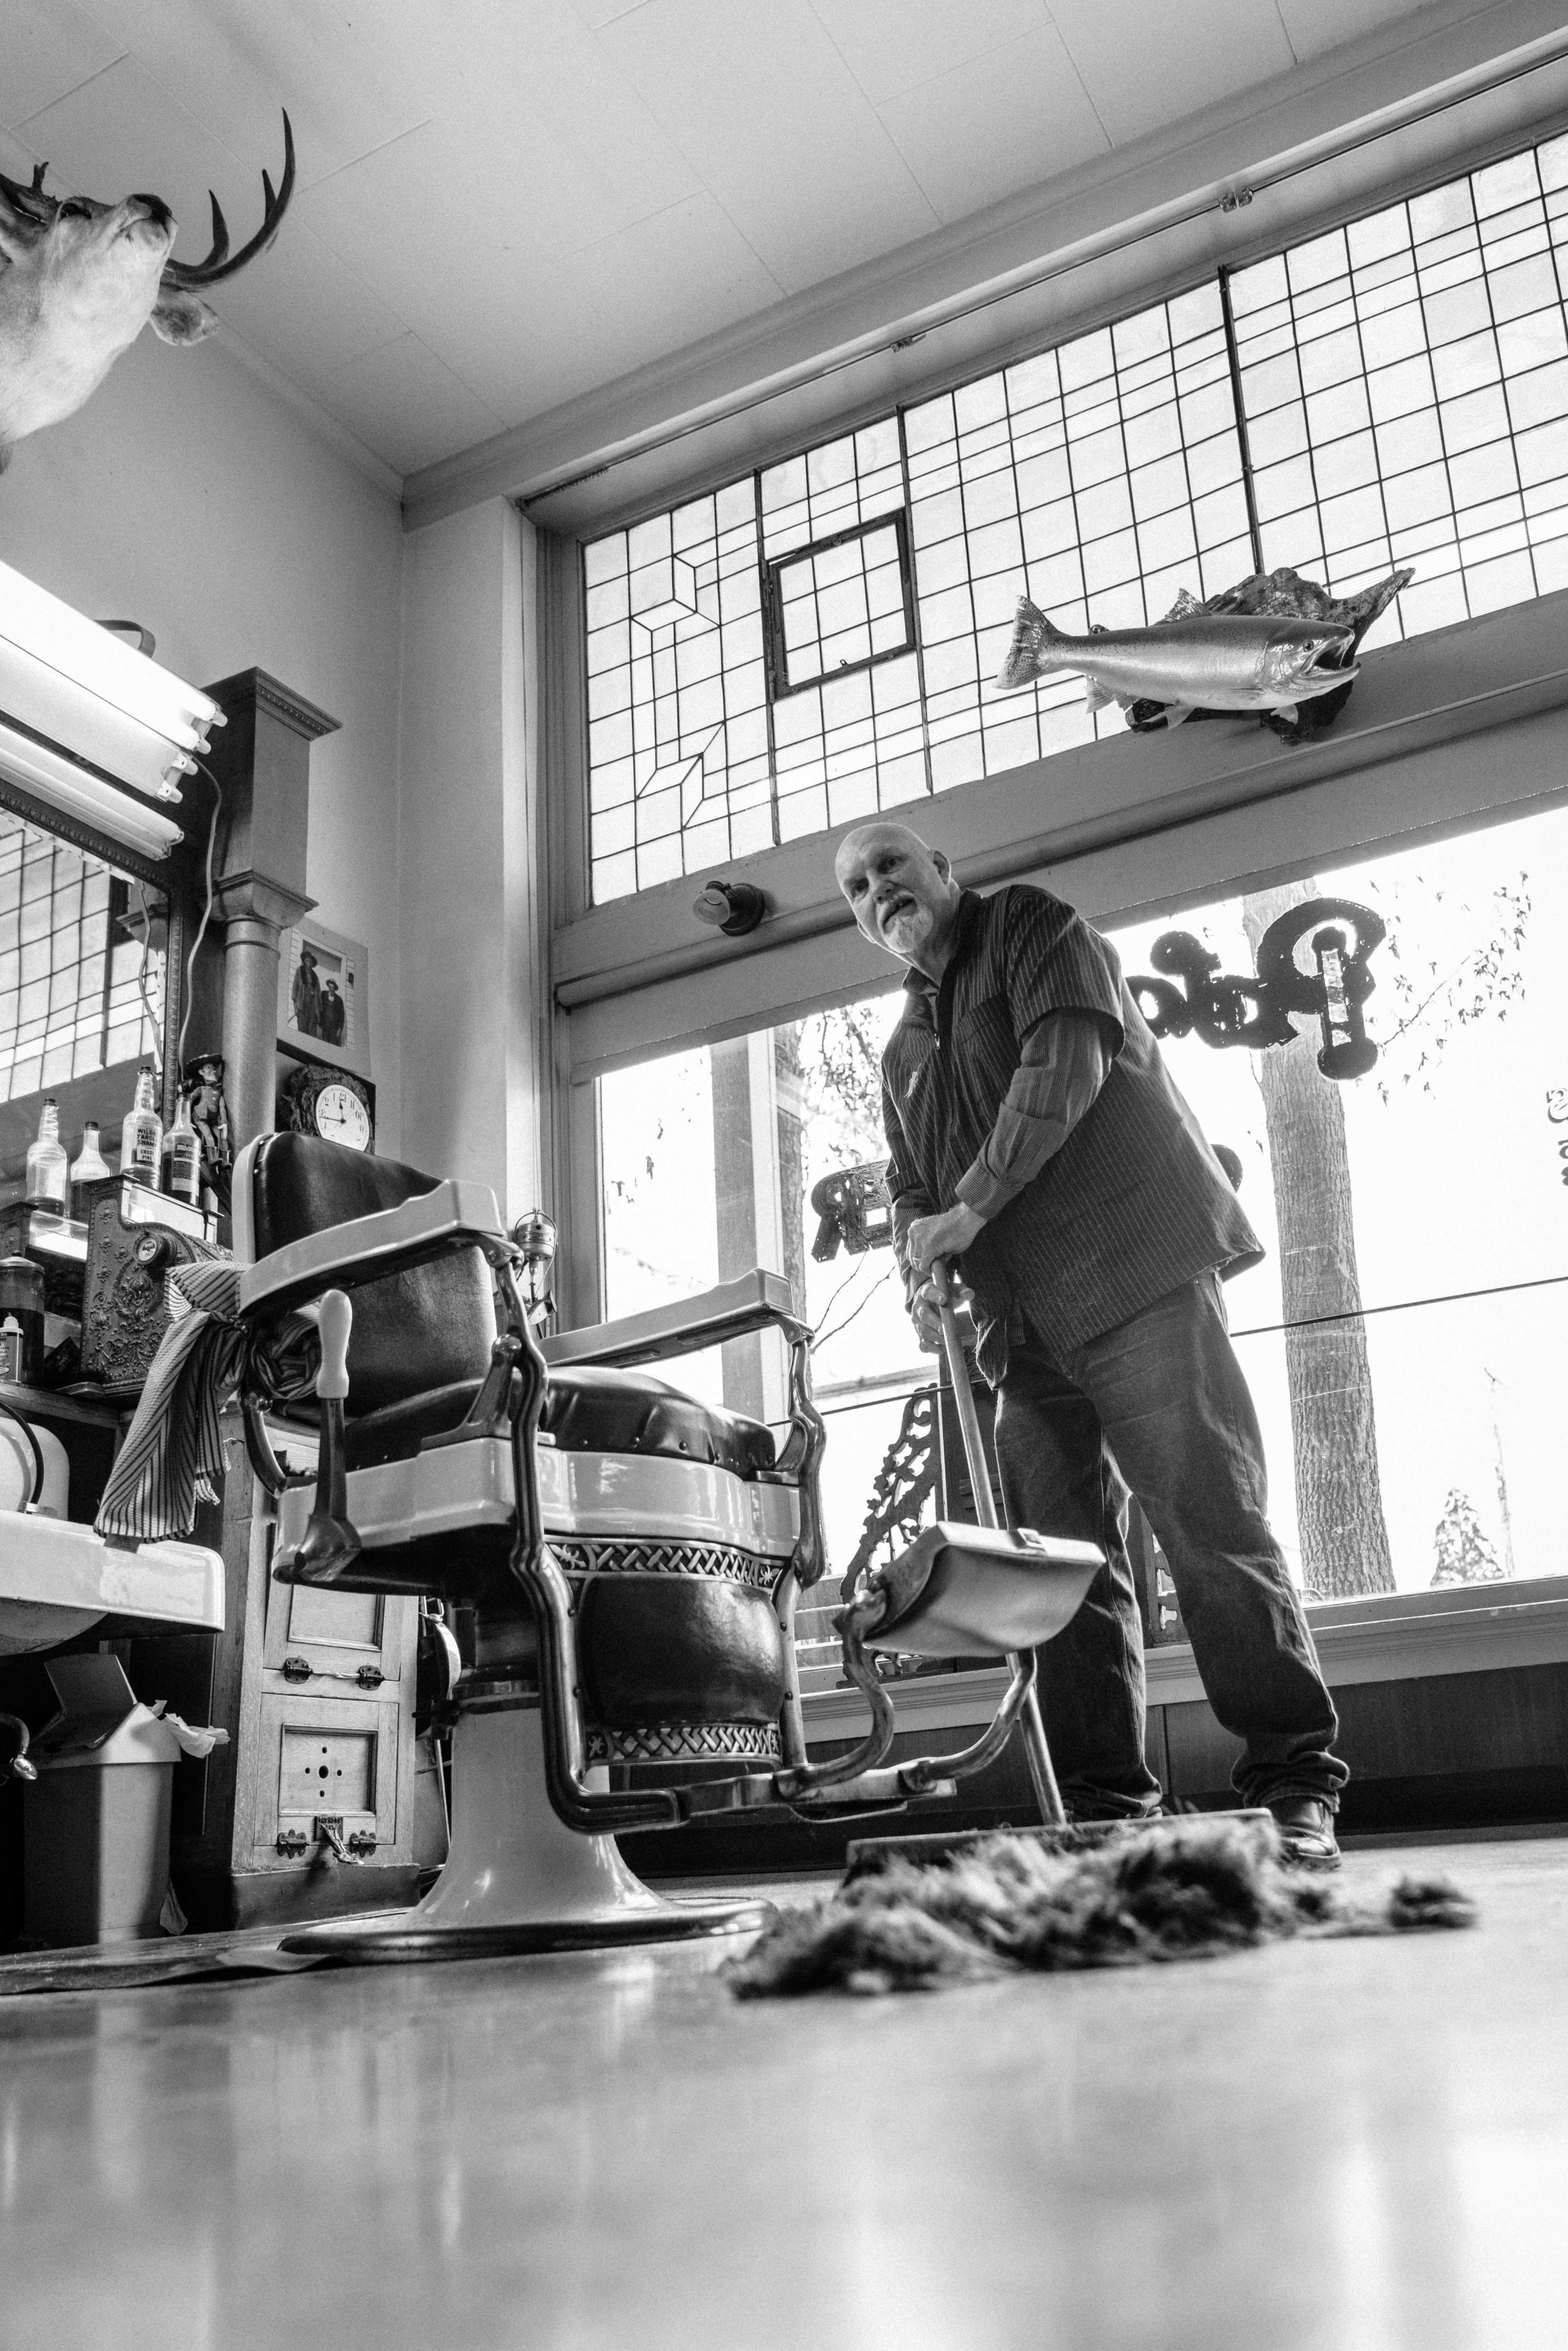 The Palace Barbershop in Yreka, CA photographs by Josué Rivas